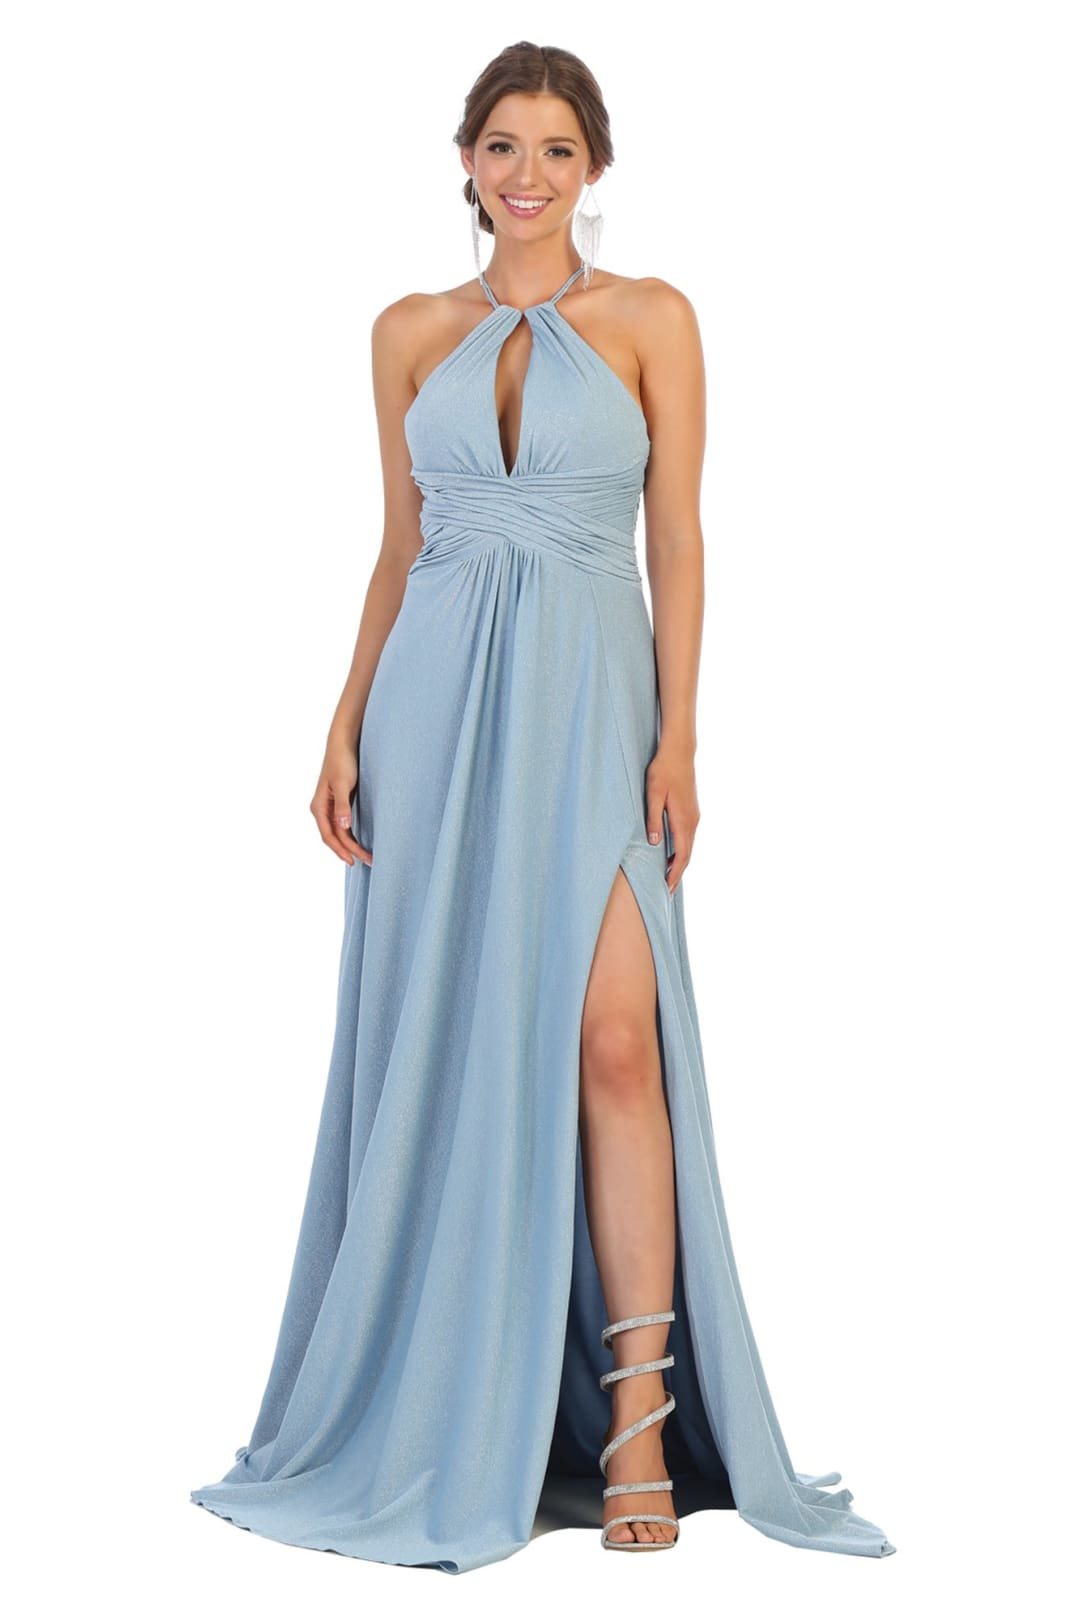 Maxi Dresses For Prom - DUSTY BLUE / 2